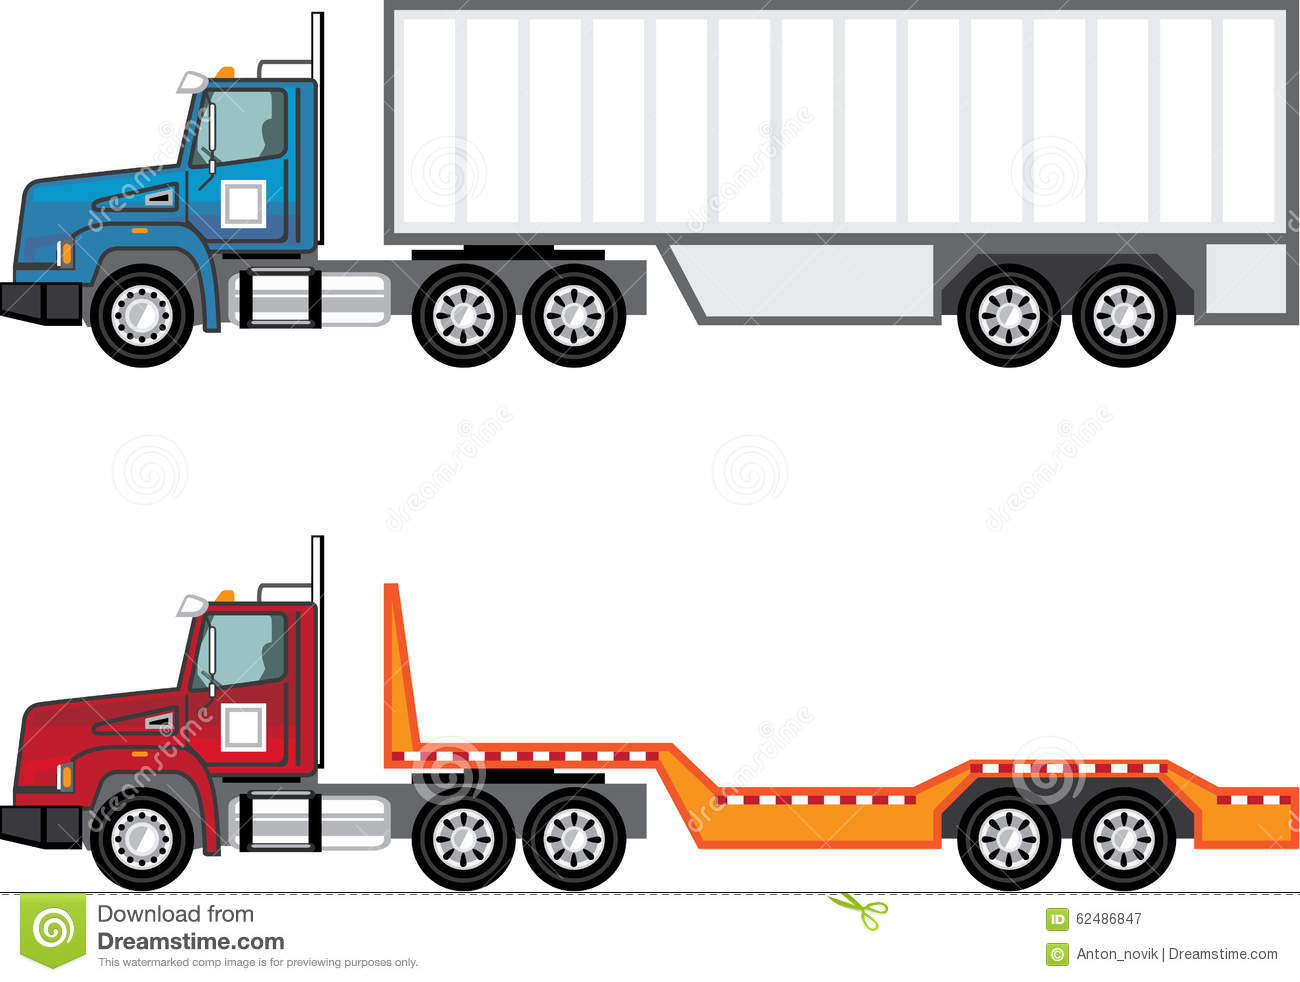 svg free stock Free download best on. Semi clipart trucking company